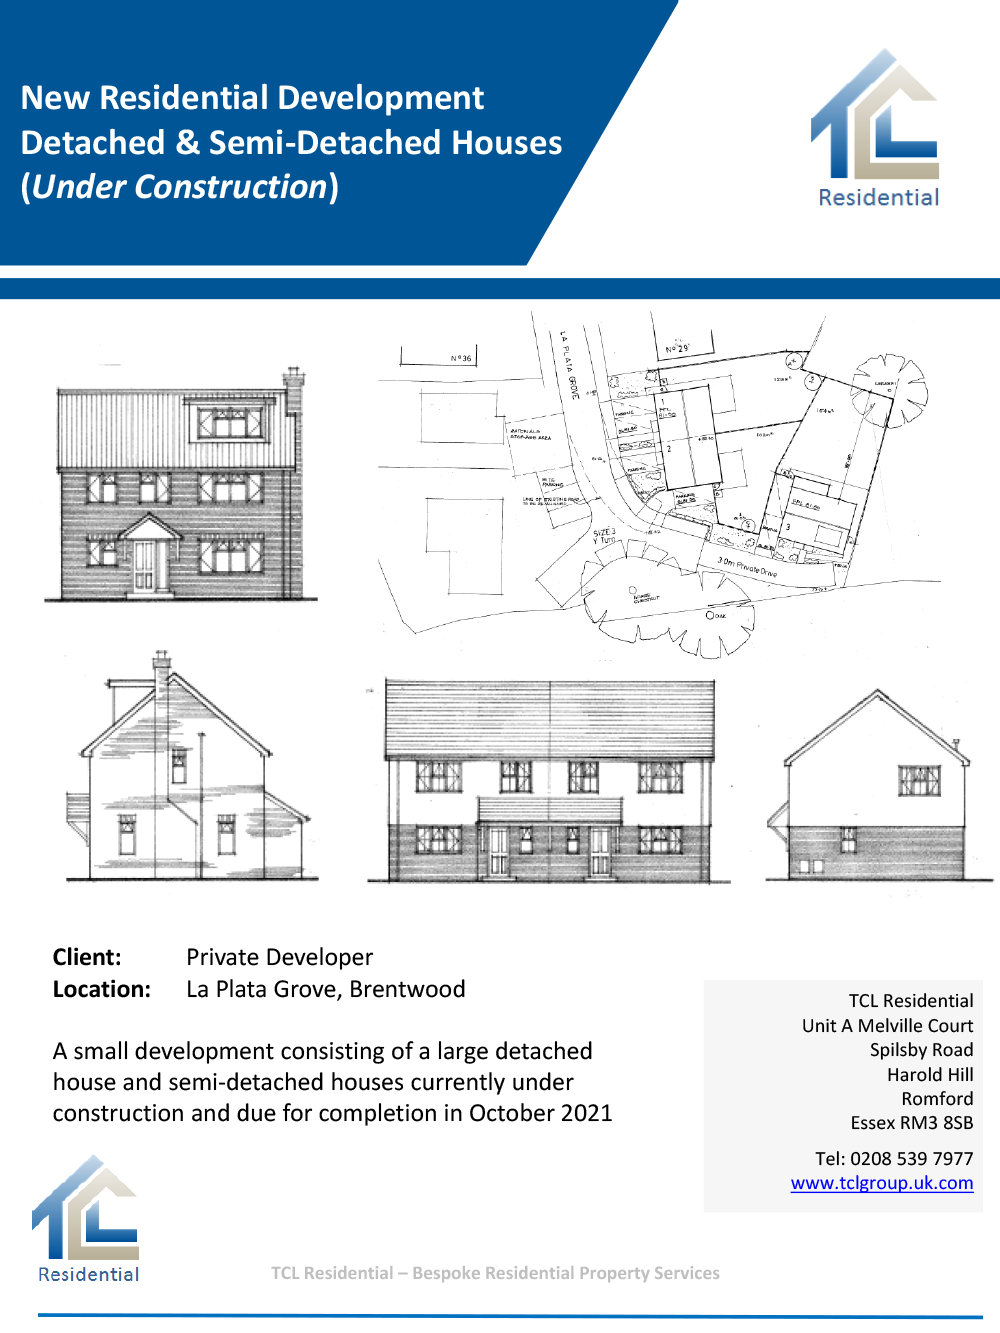 New Residential Development Detached & Semi Detached Houses (Under Construction)